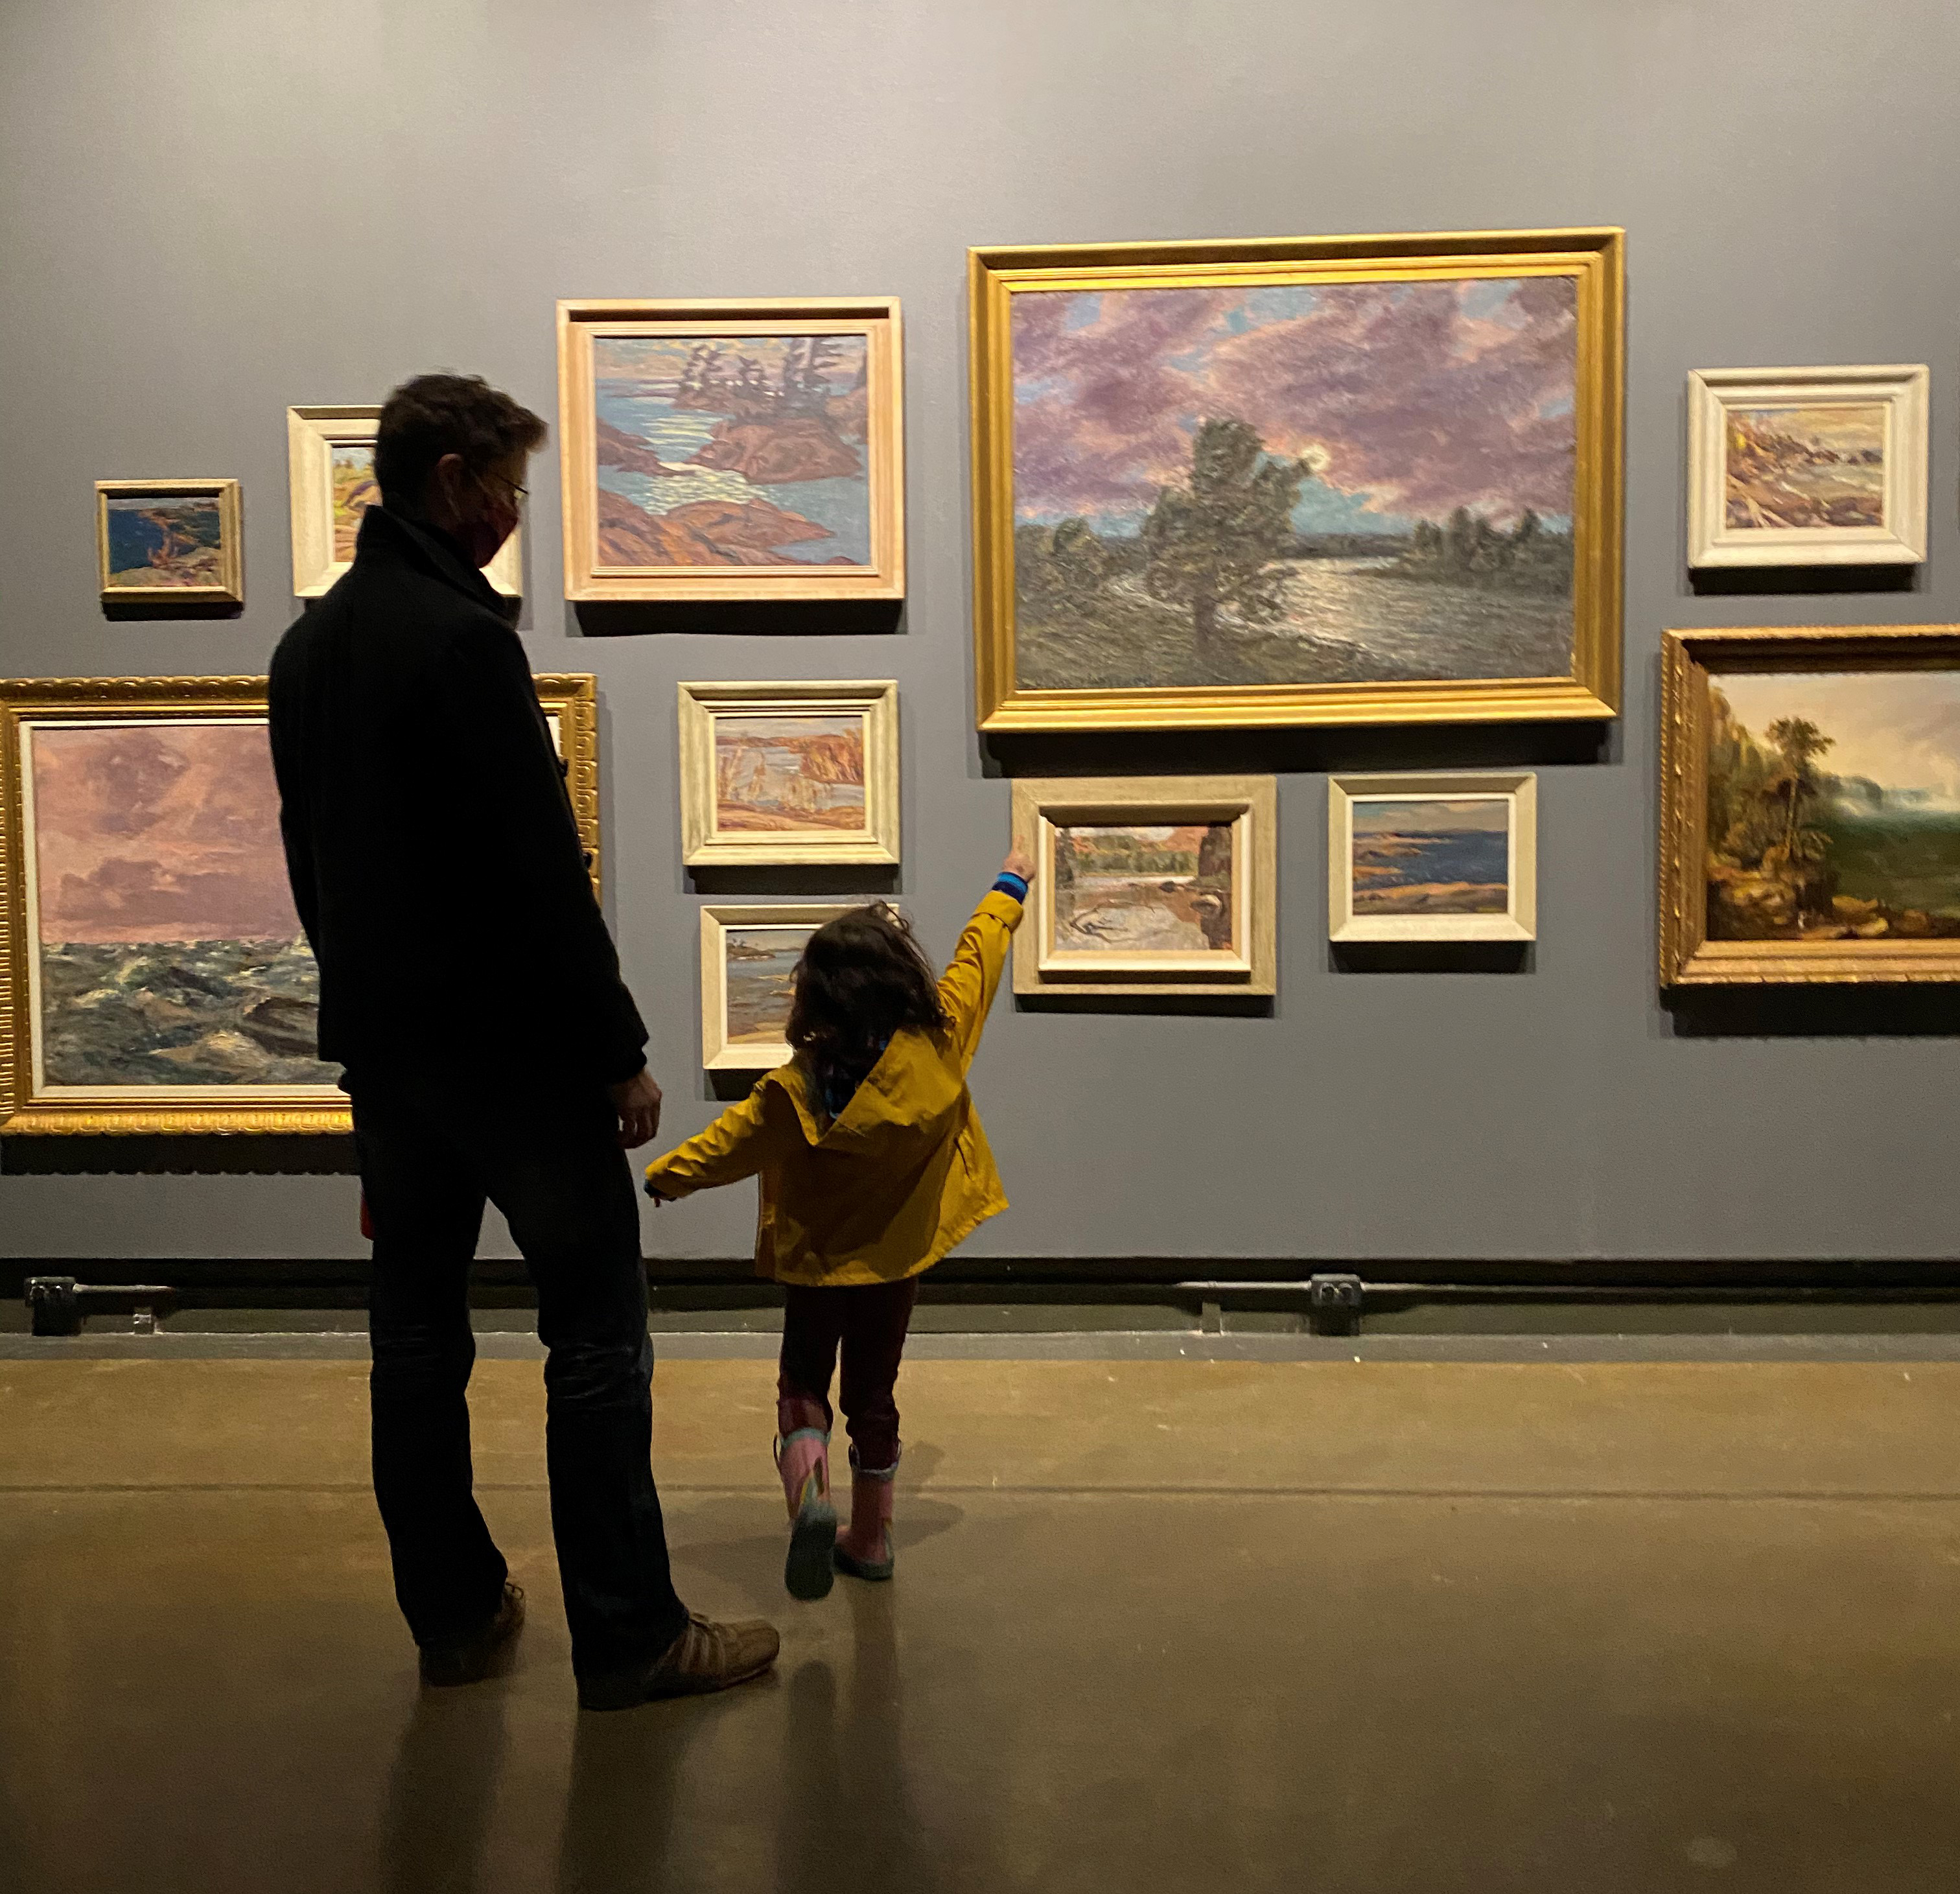 A man accompanies a small child in a raincoat and boots who points excitedly at a dark gallery wall filled salon-style with Canadian landcape paintings of various sizes